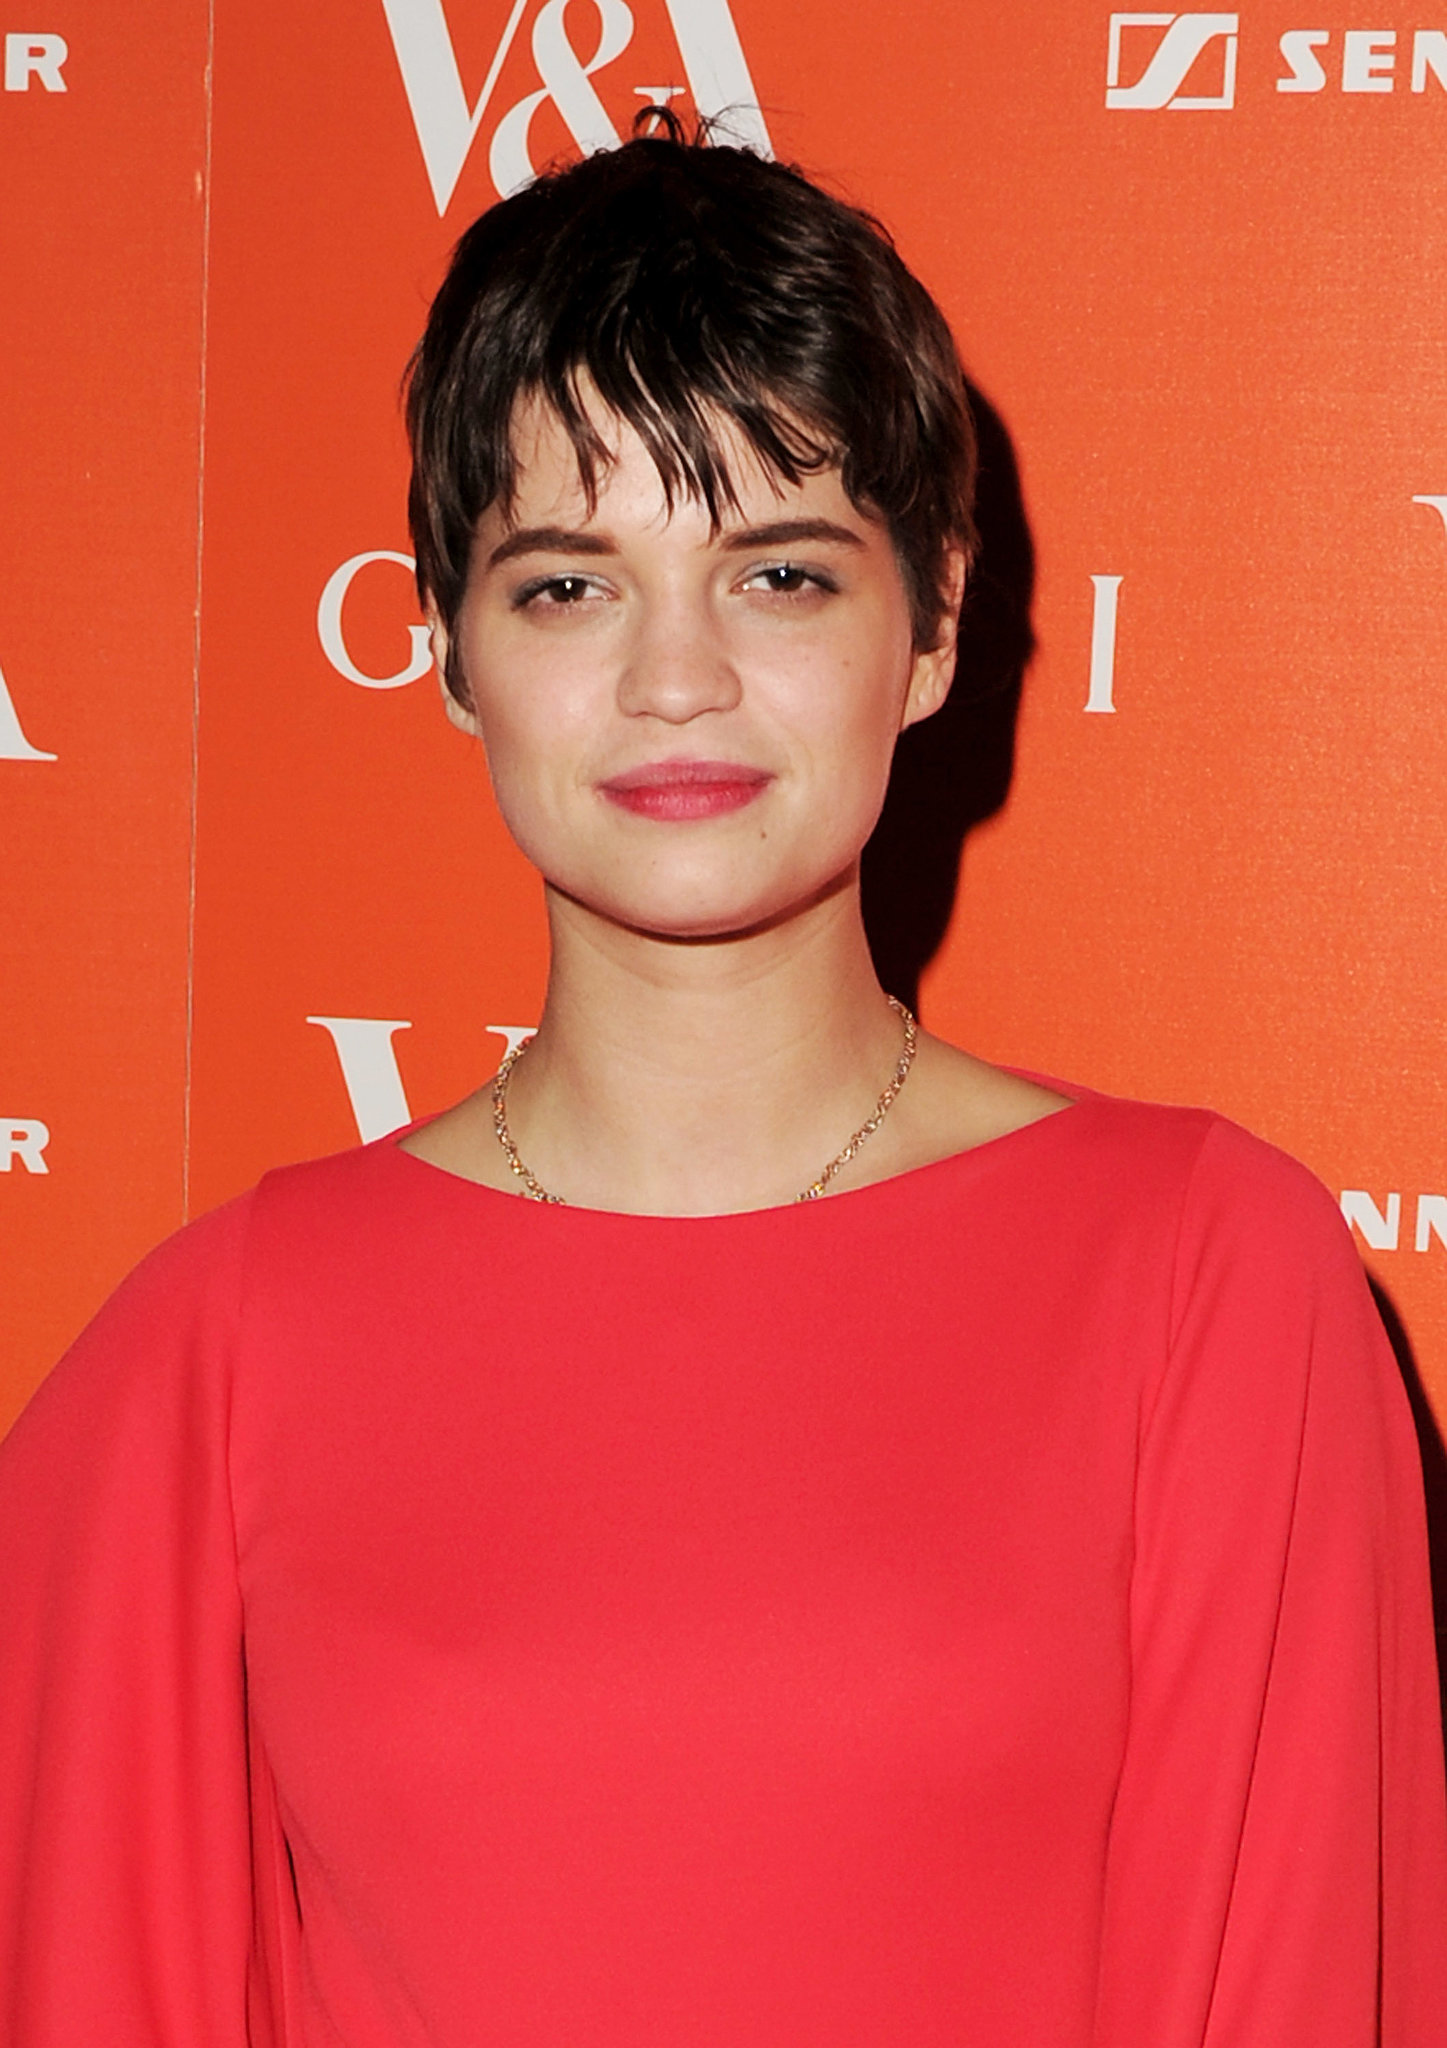 If your name is Pixie Geldof, there's only one viable haircut for you.